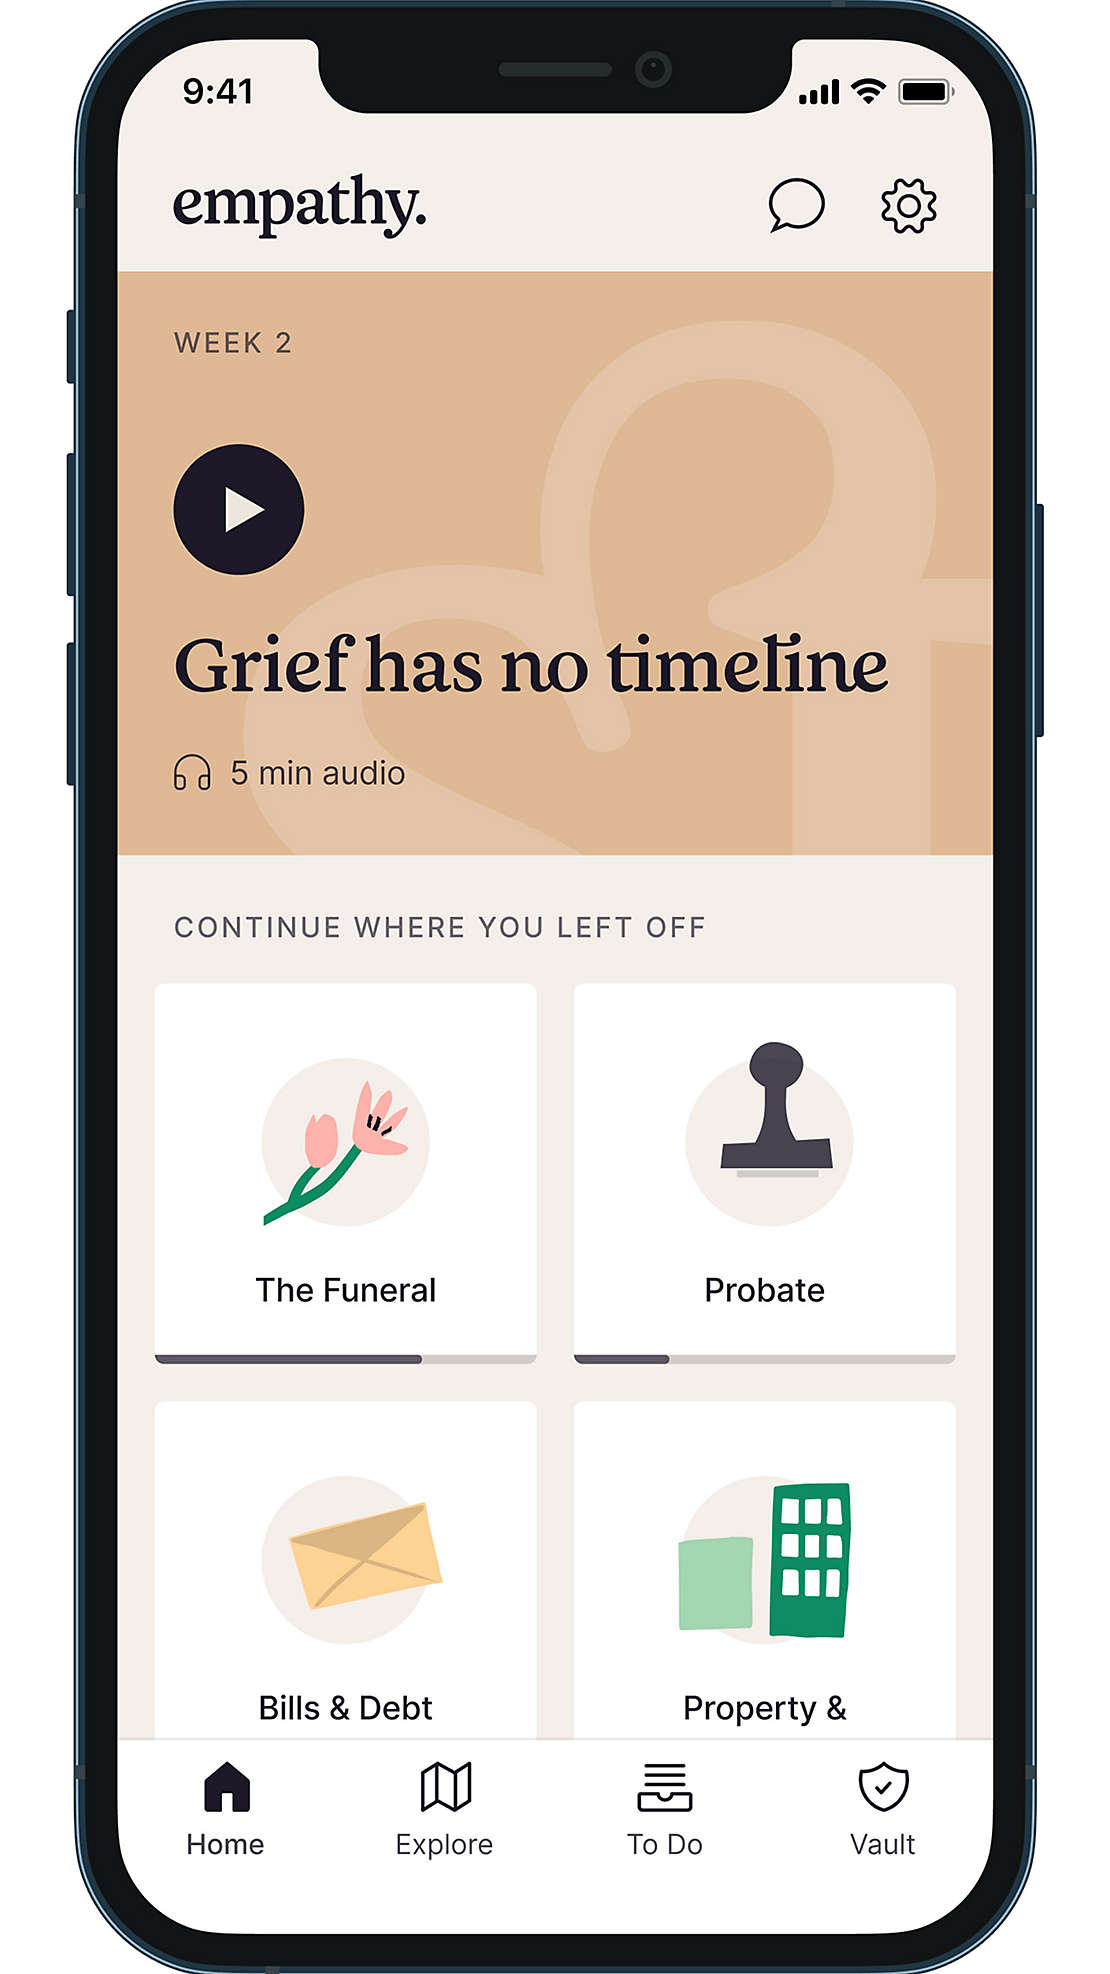 Empathy App shown on a cell phone